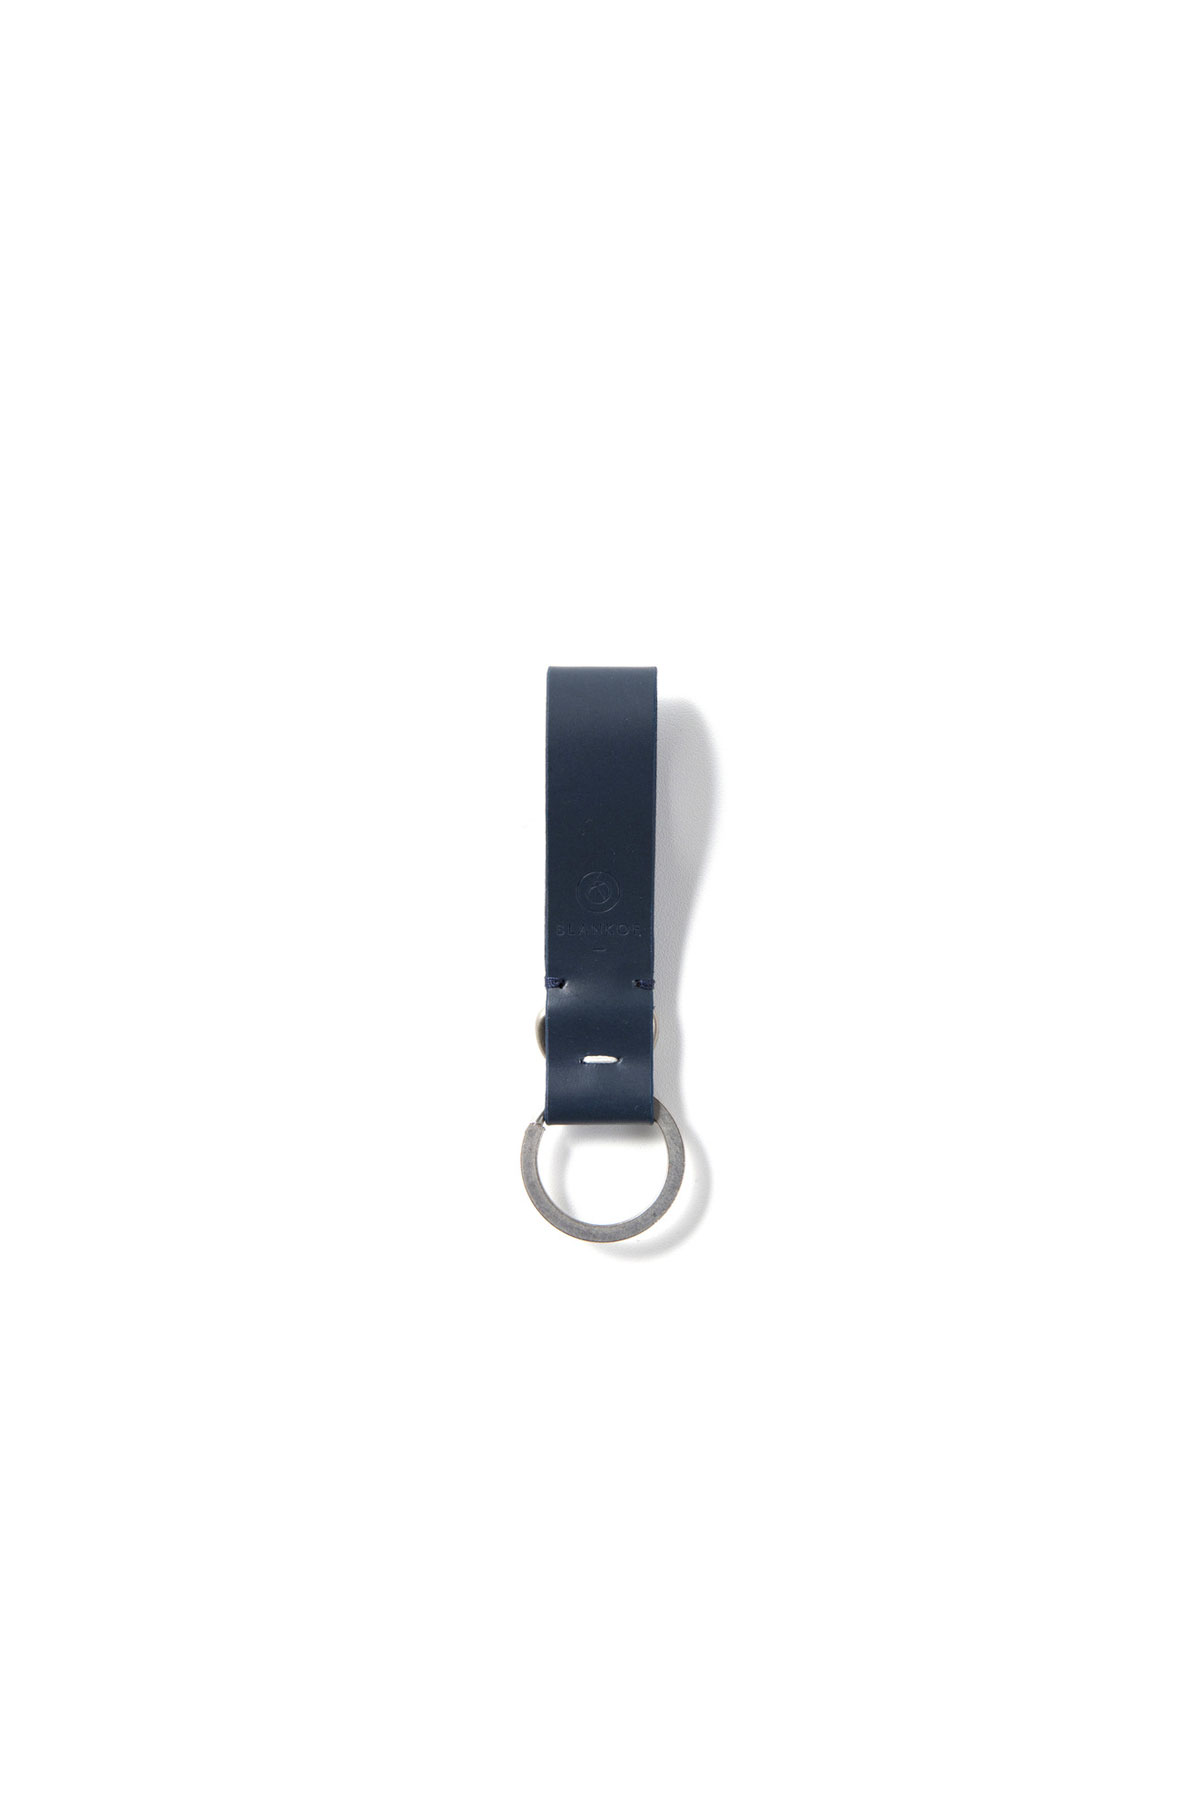 Blankof : ACL 03 T2 Key Loop (Navy)